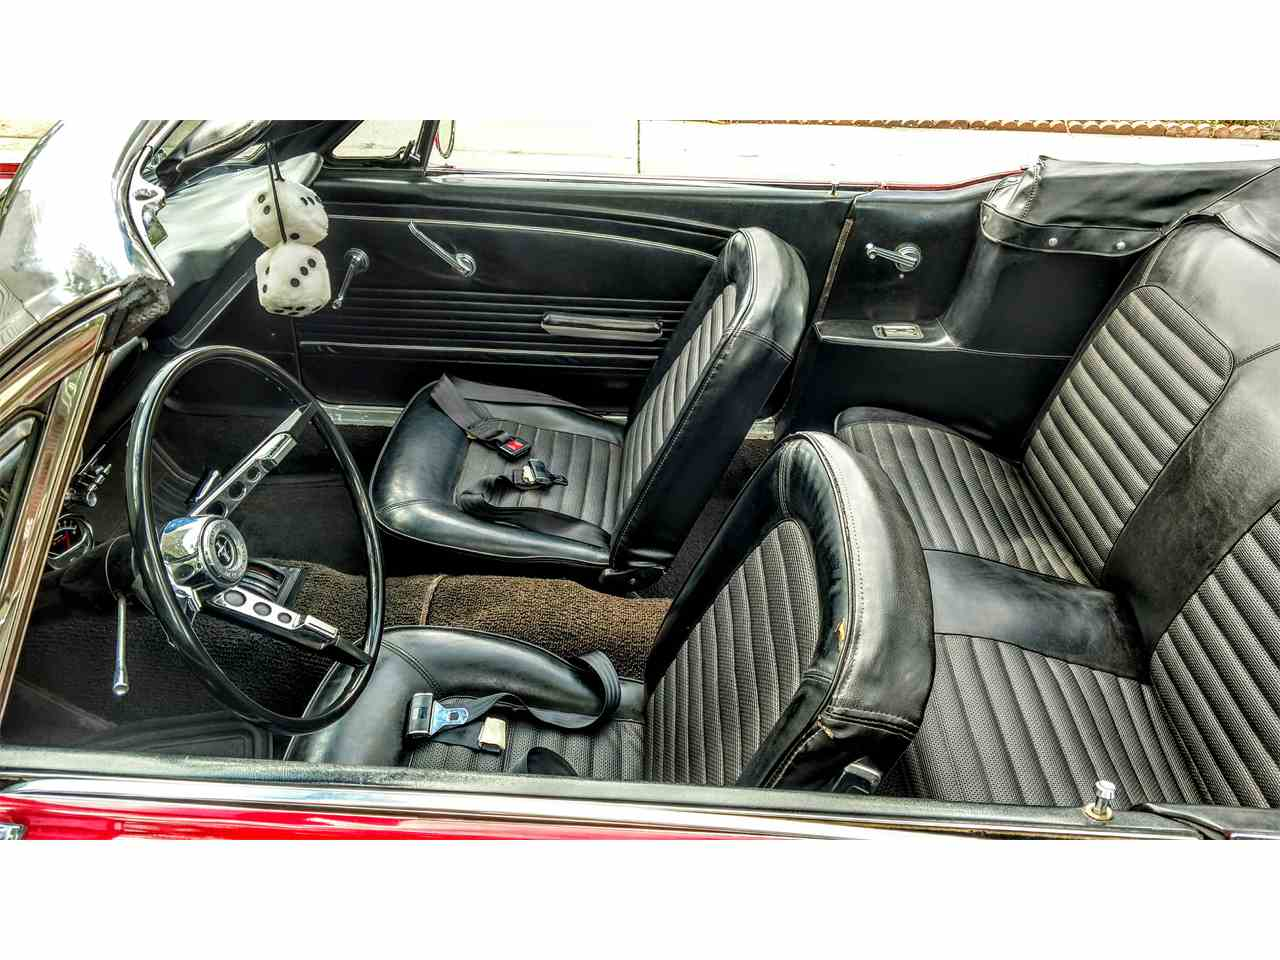 Large Picture of Classic 1966 Ford Mustang - $20,000.00 Offered by a Private Seller - LFP4